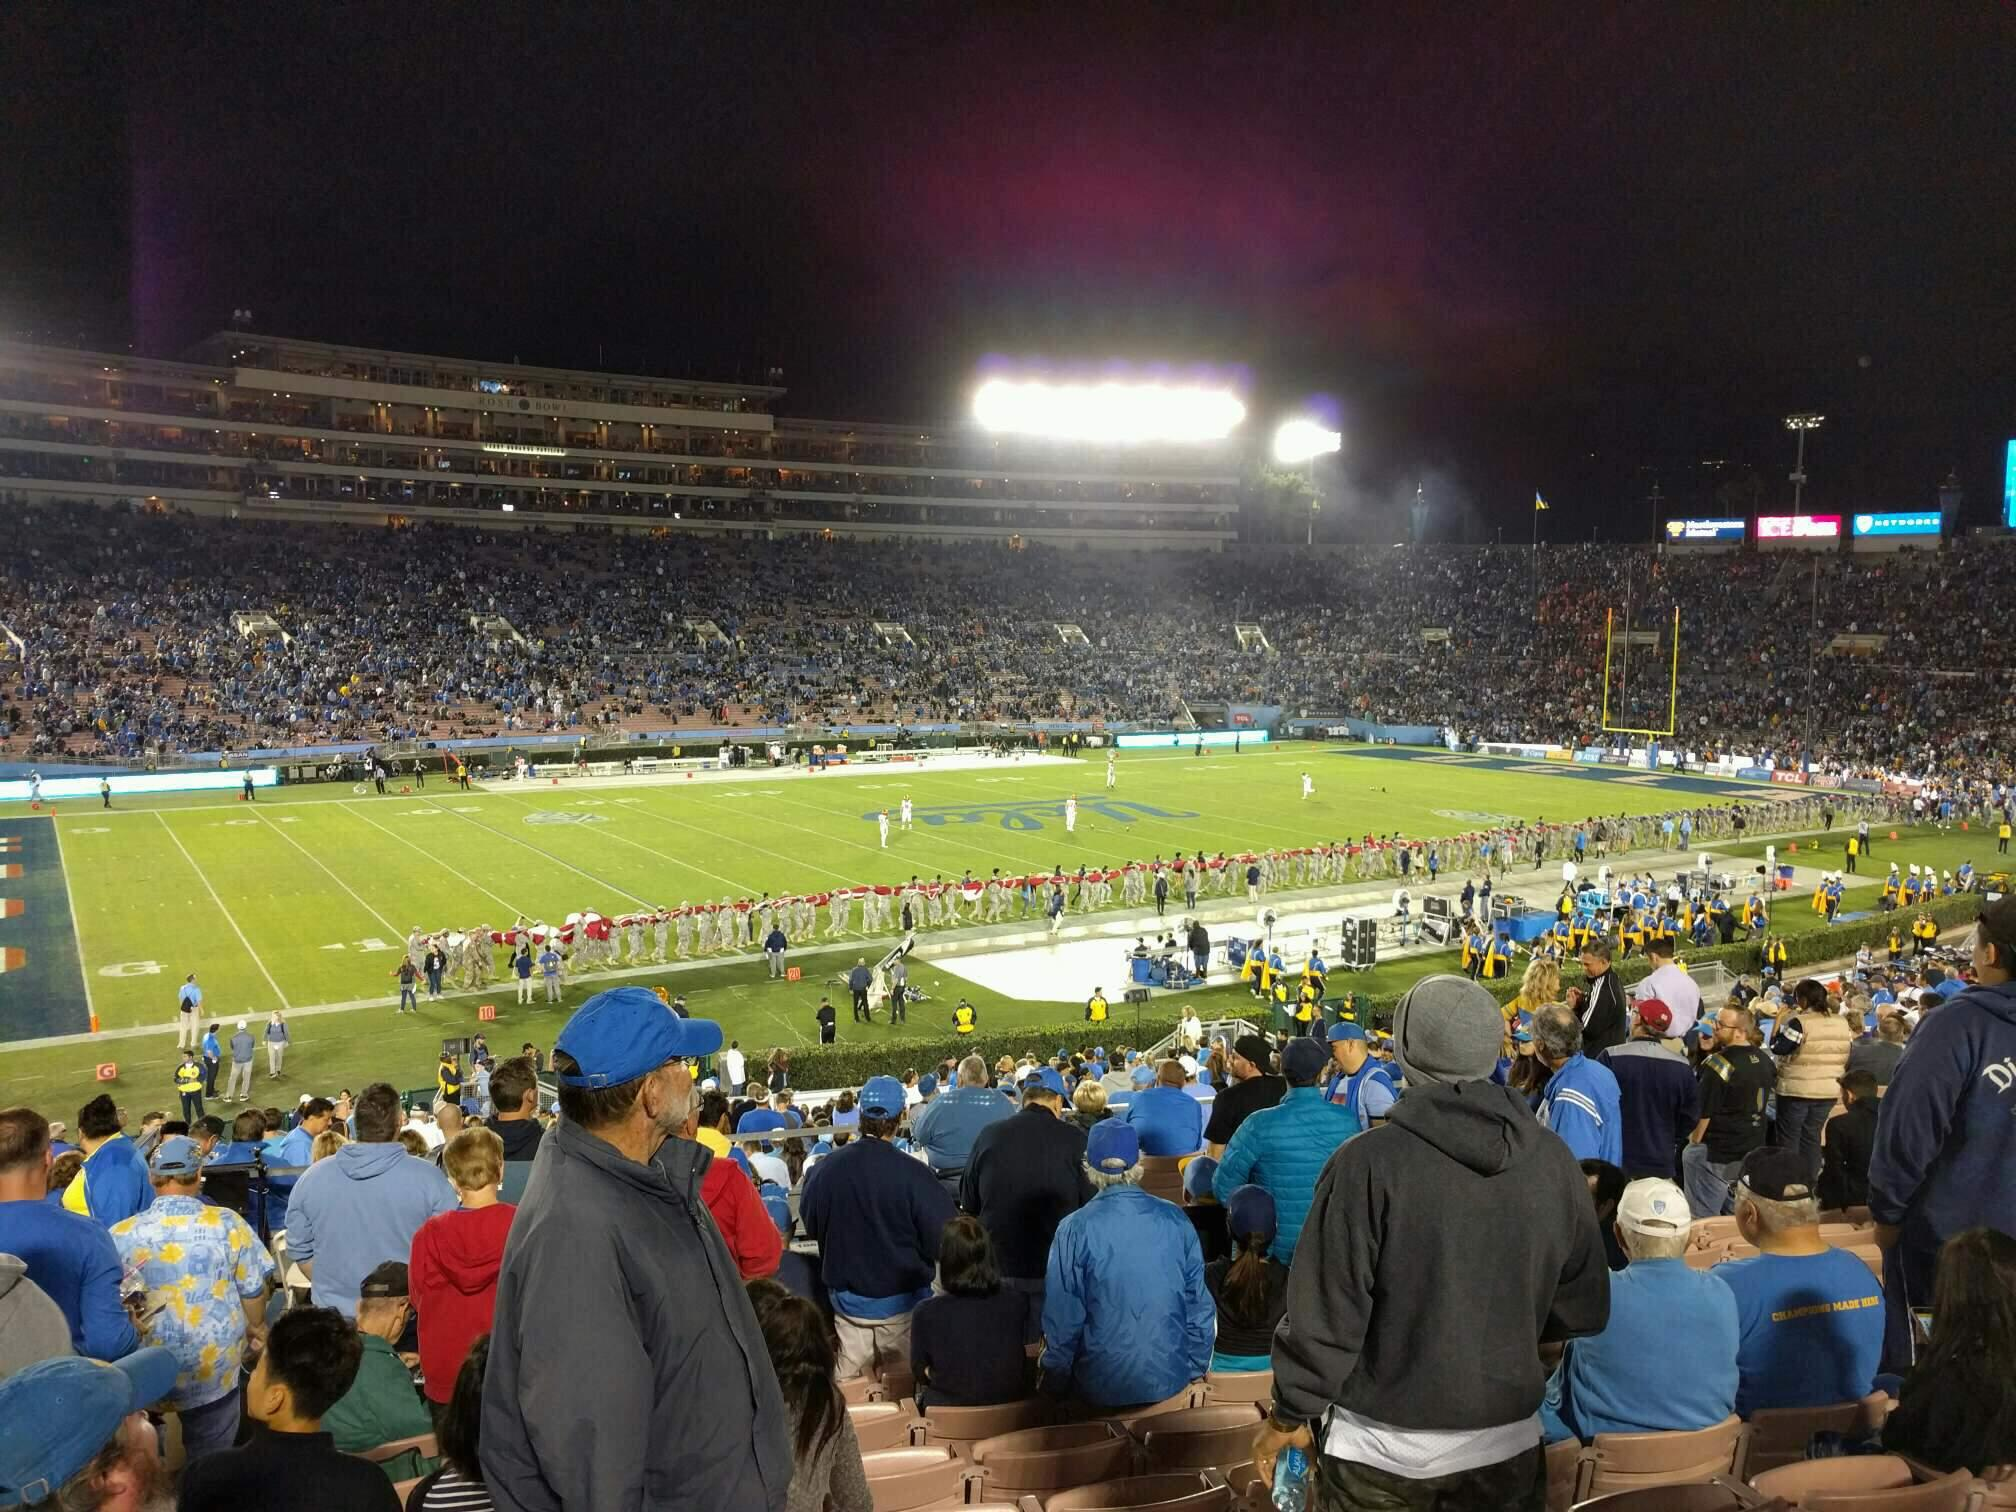 Rose Bowl Section 2-H Row 41 Seat 103